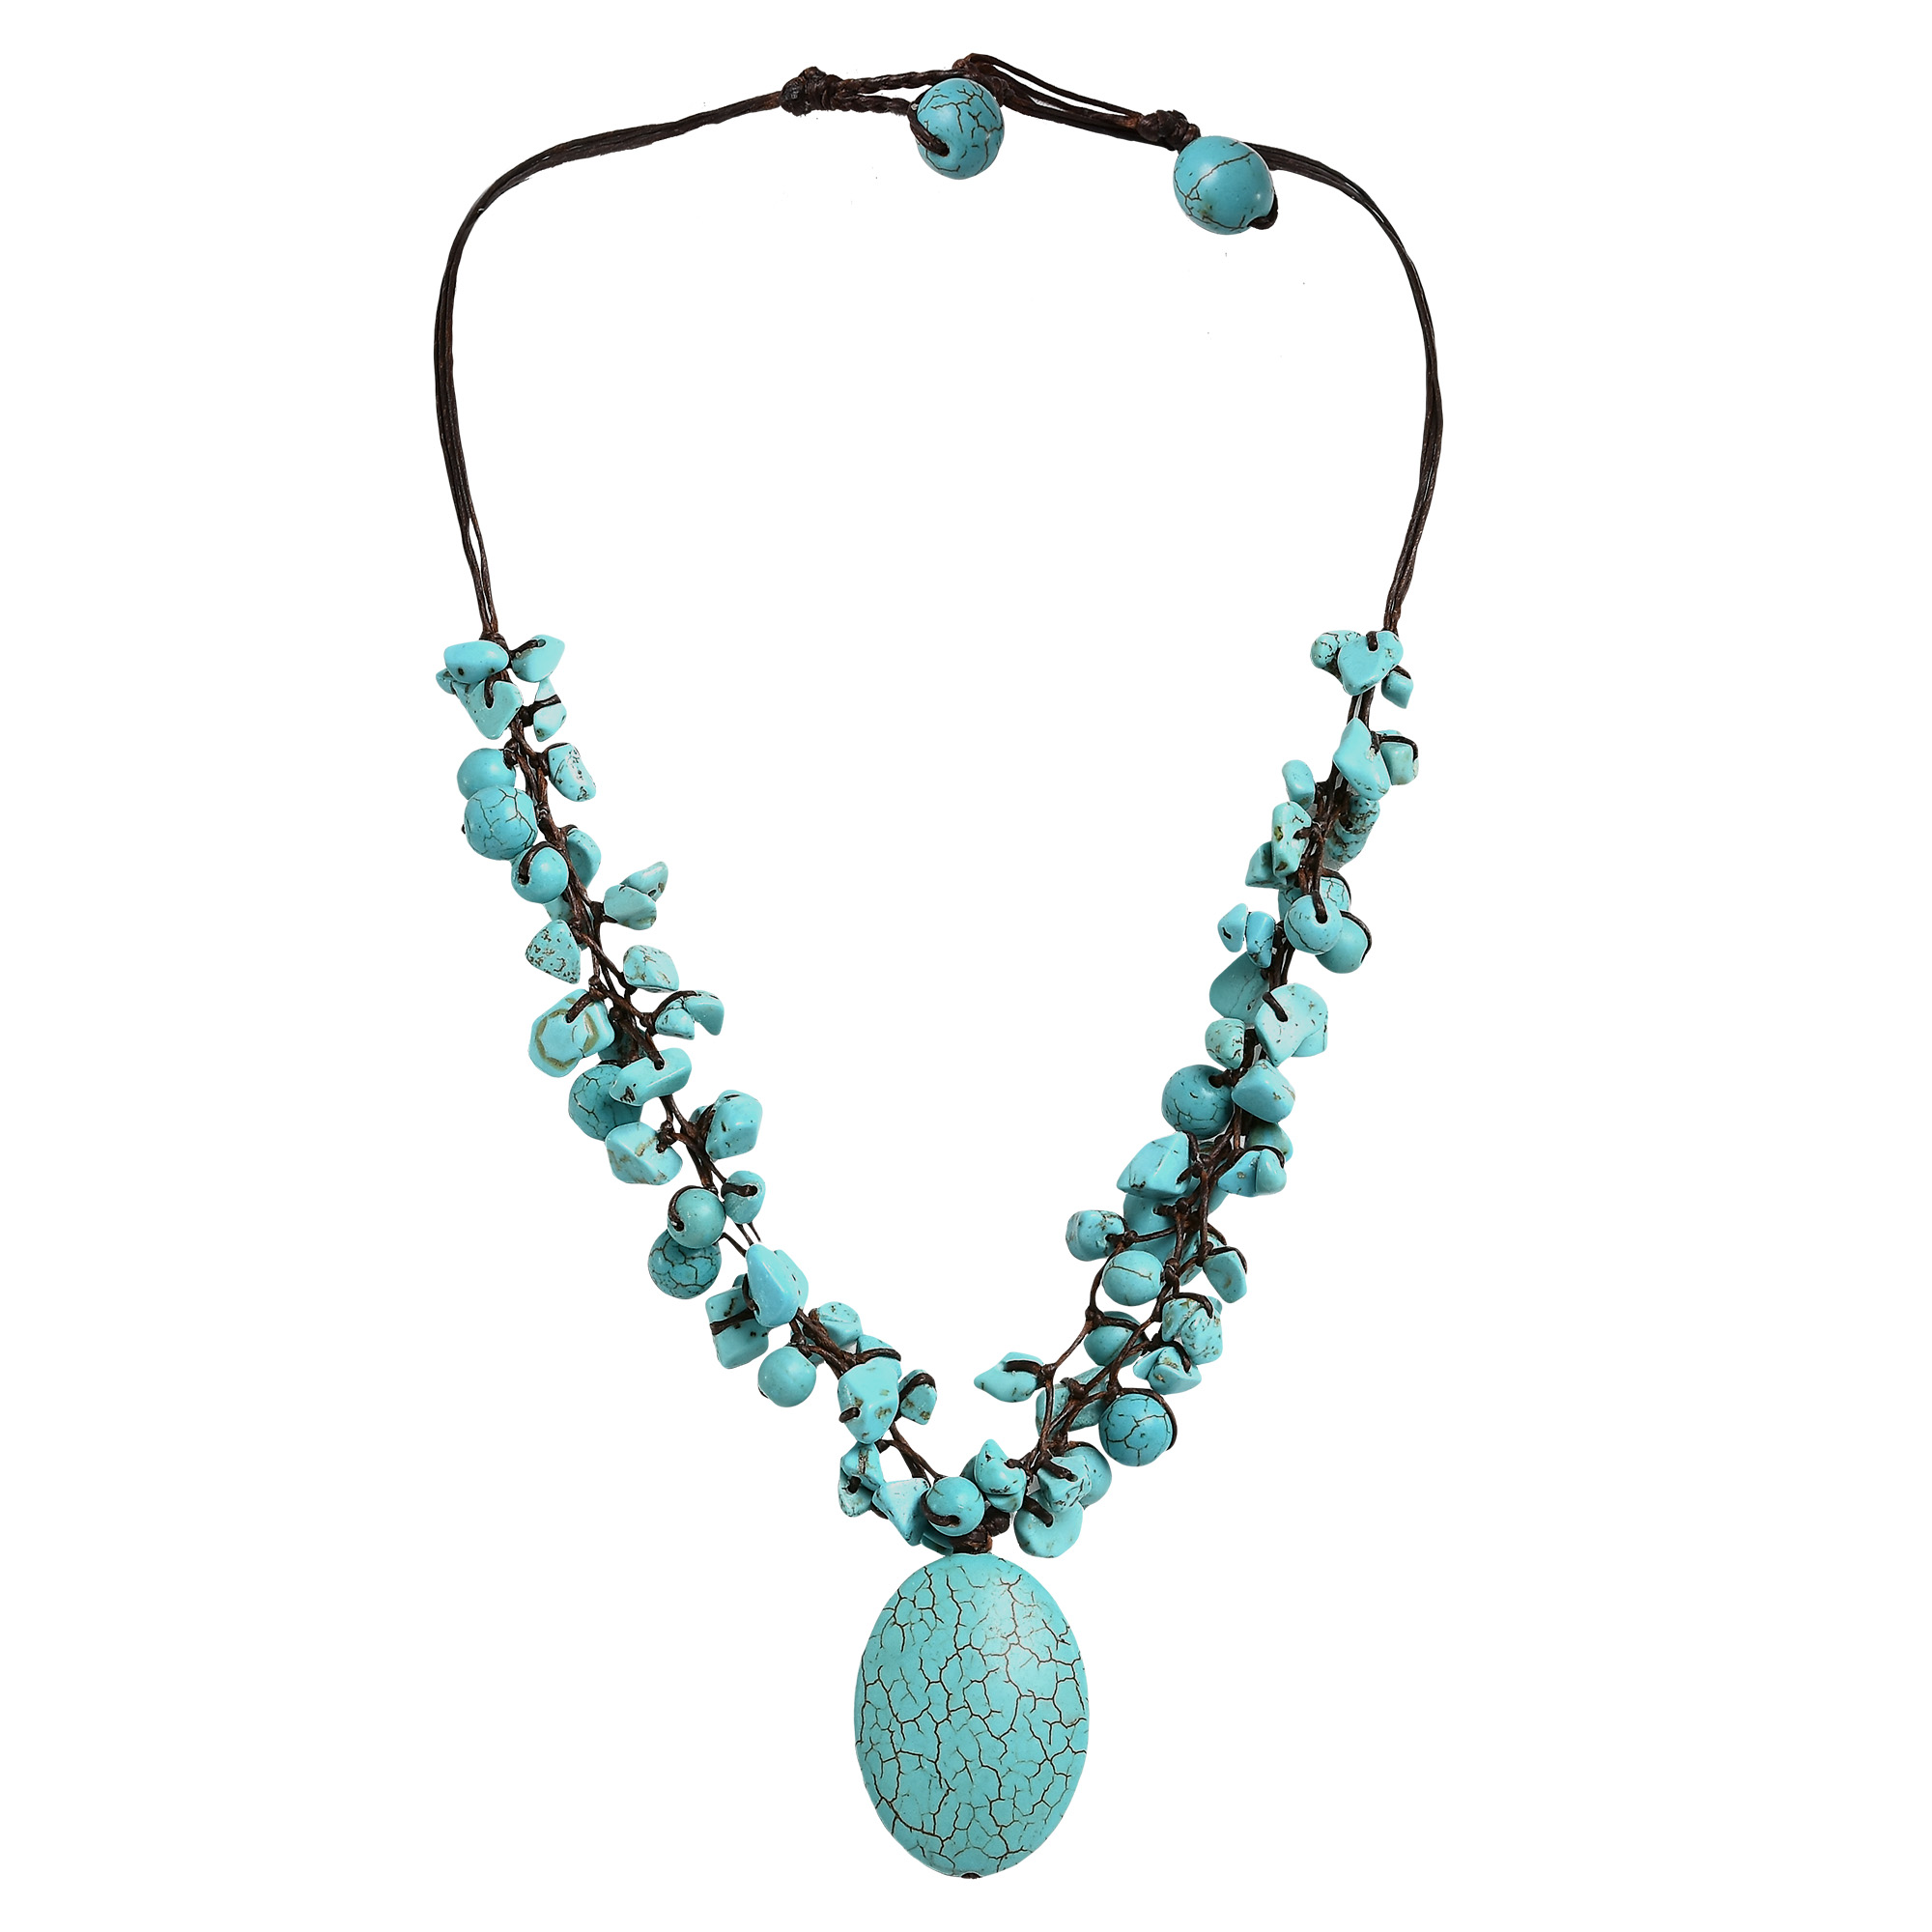 stone fashion paved trendy beloved necklace products vadan contemporary jewerly pendant women triangle sparkles turquoise